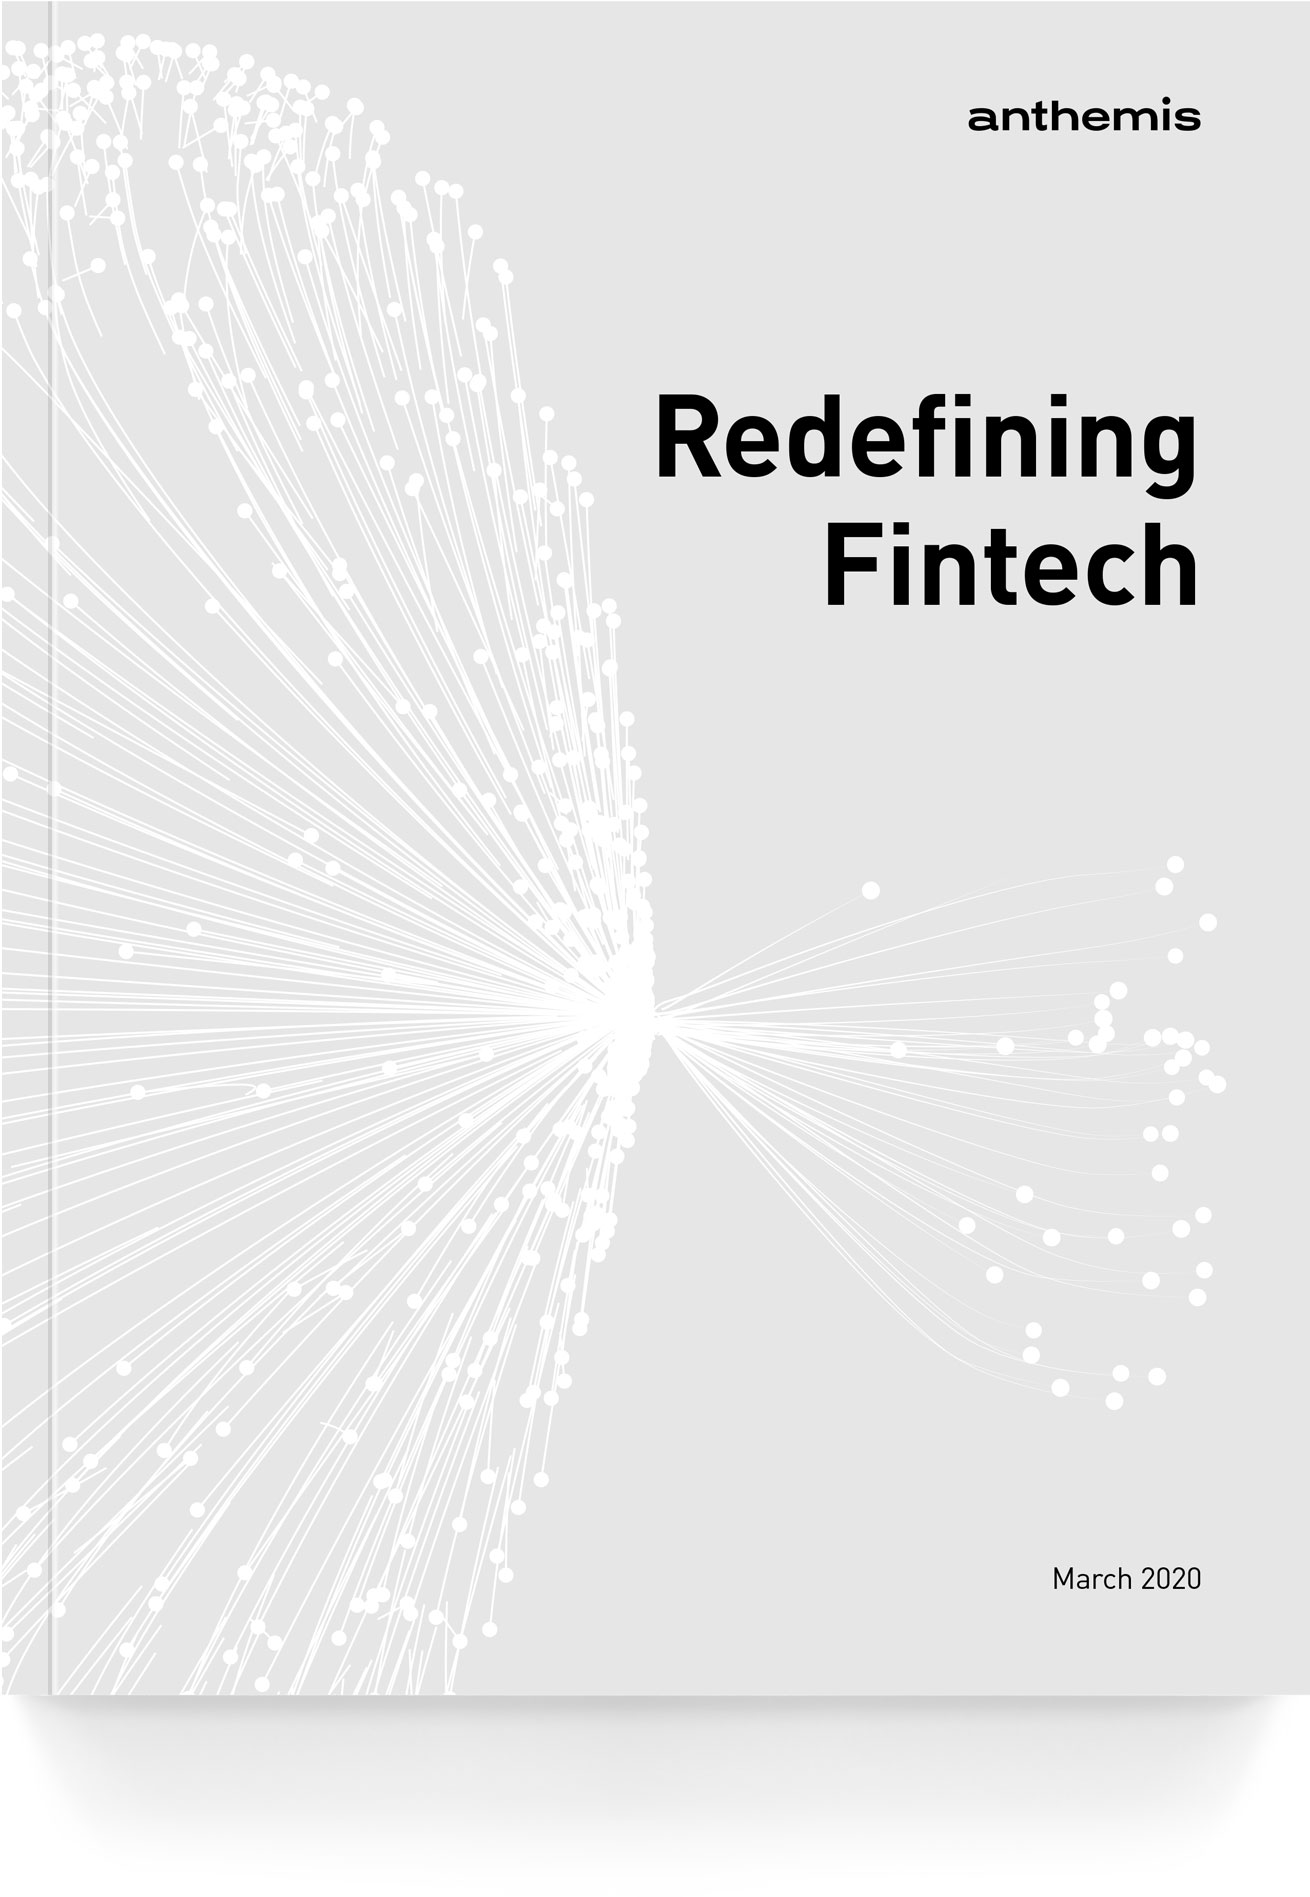 Anthemis-Redefining-Fintech-White-Paper-Cover-2020